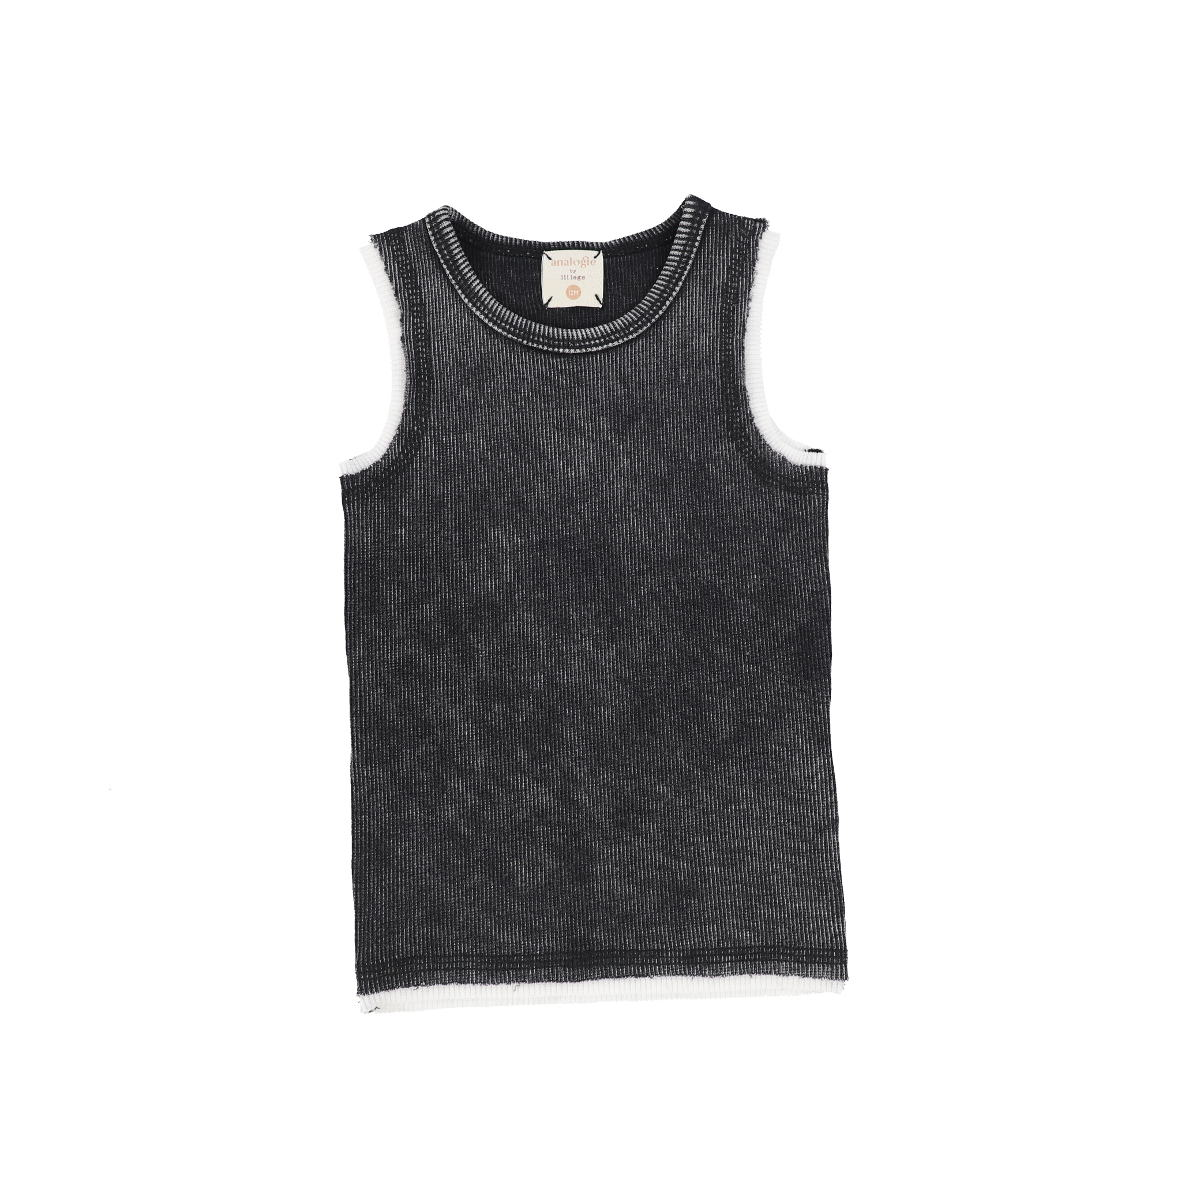 Analogie Black Wash Denim Tank